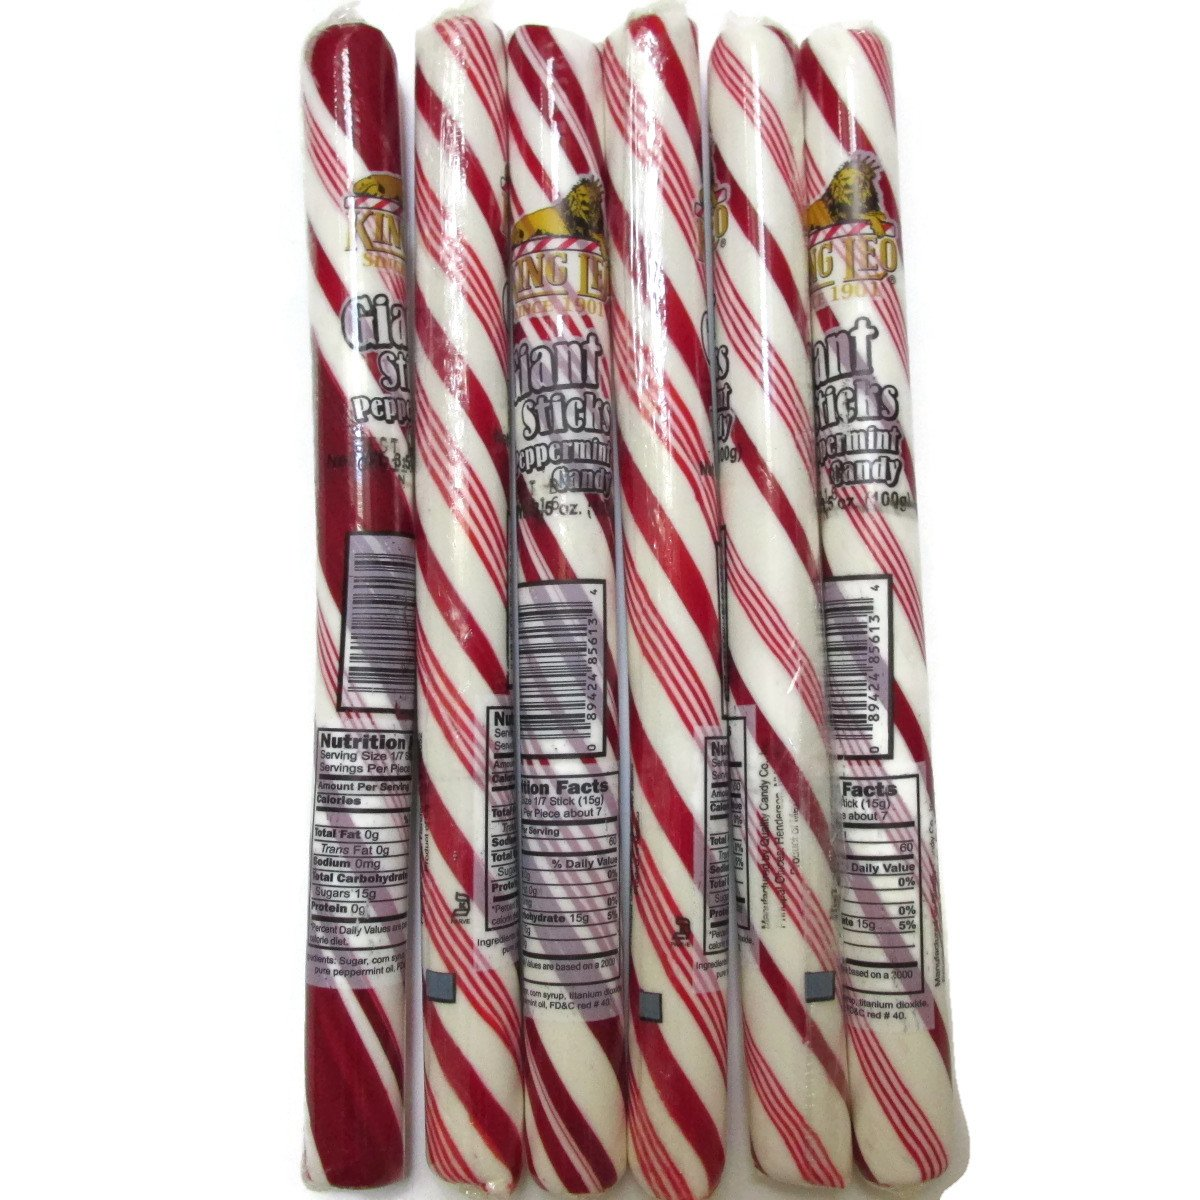 amazon com king leo giant peppermint stick candy cane pack of 6